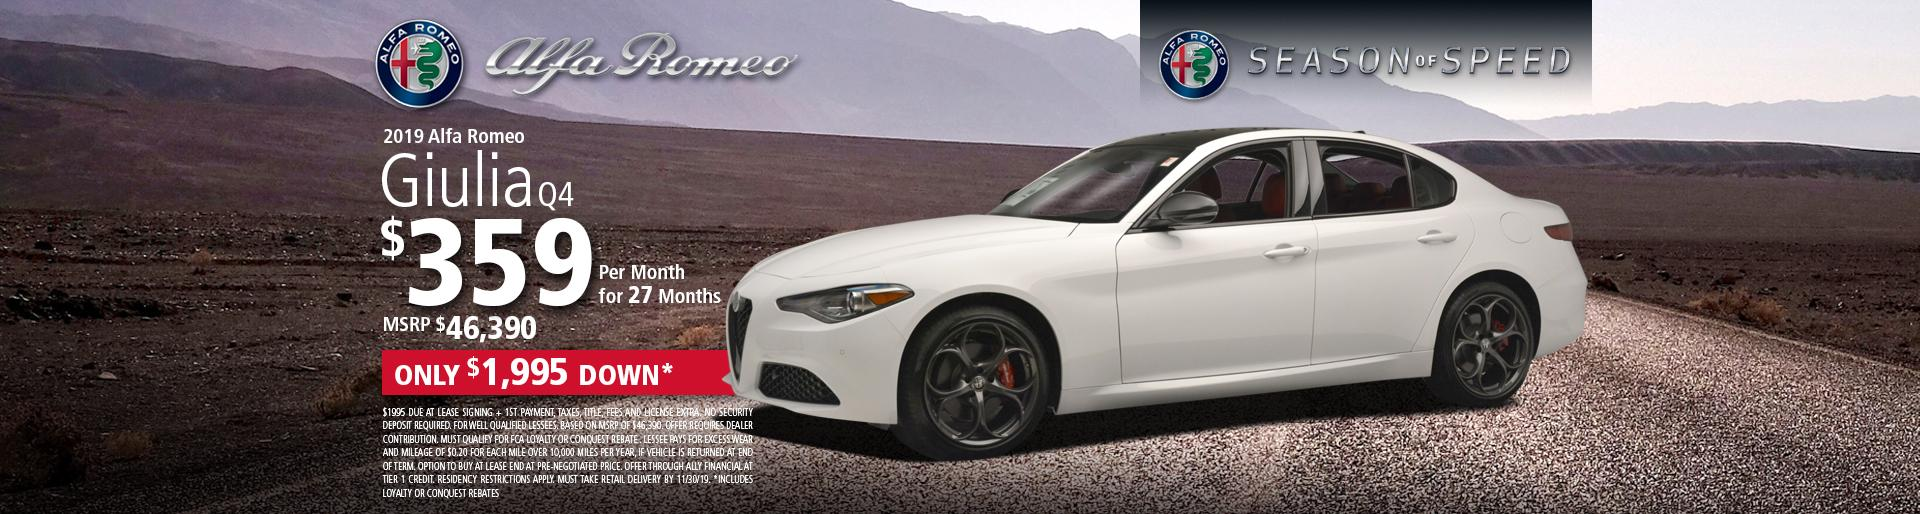 Lease 2019 Alfa Romeo Giulia Q4 $359 per month for 27months. Only $1,995 Down* MSRP $46,390